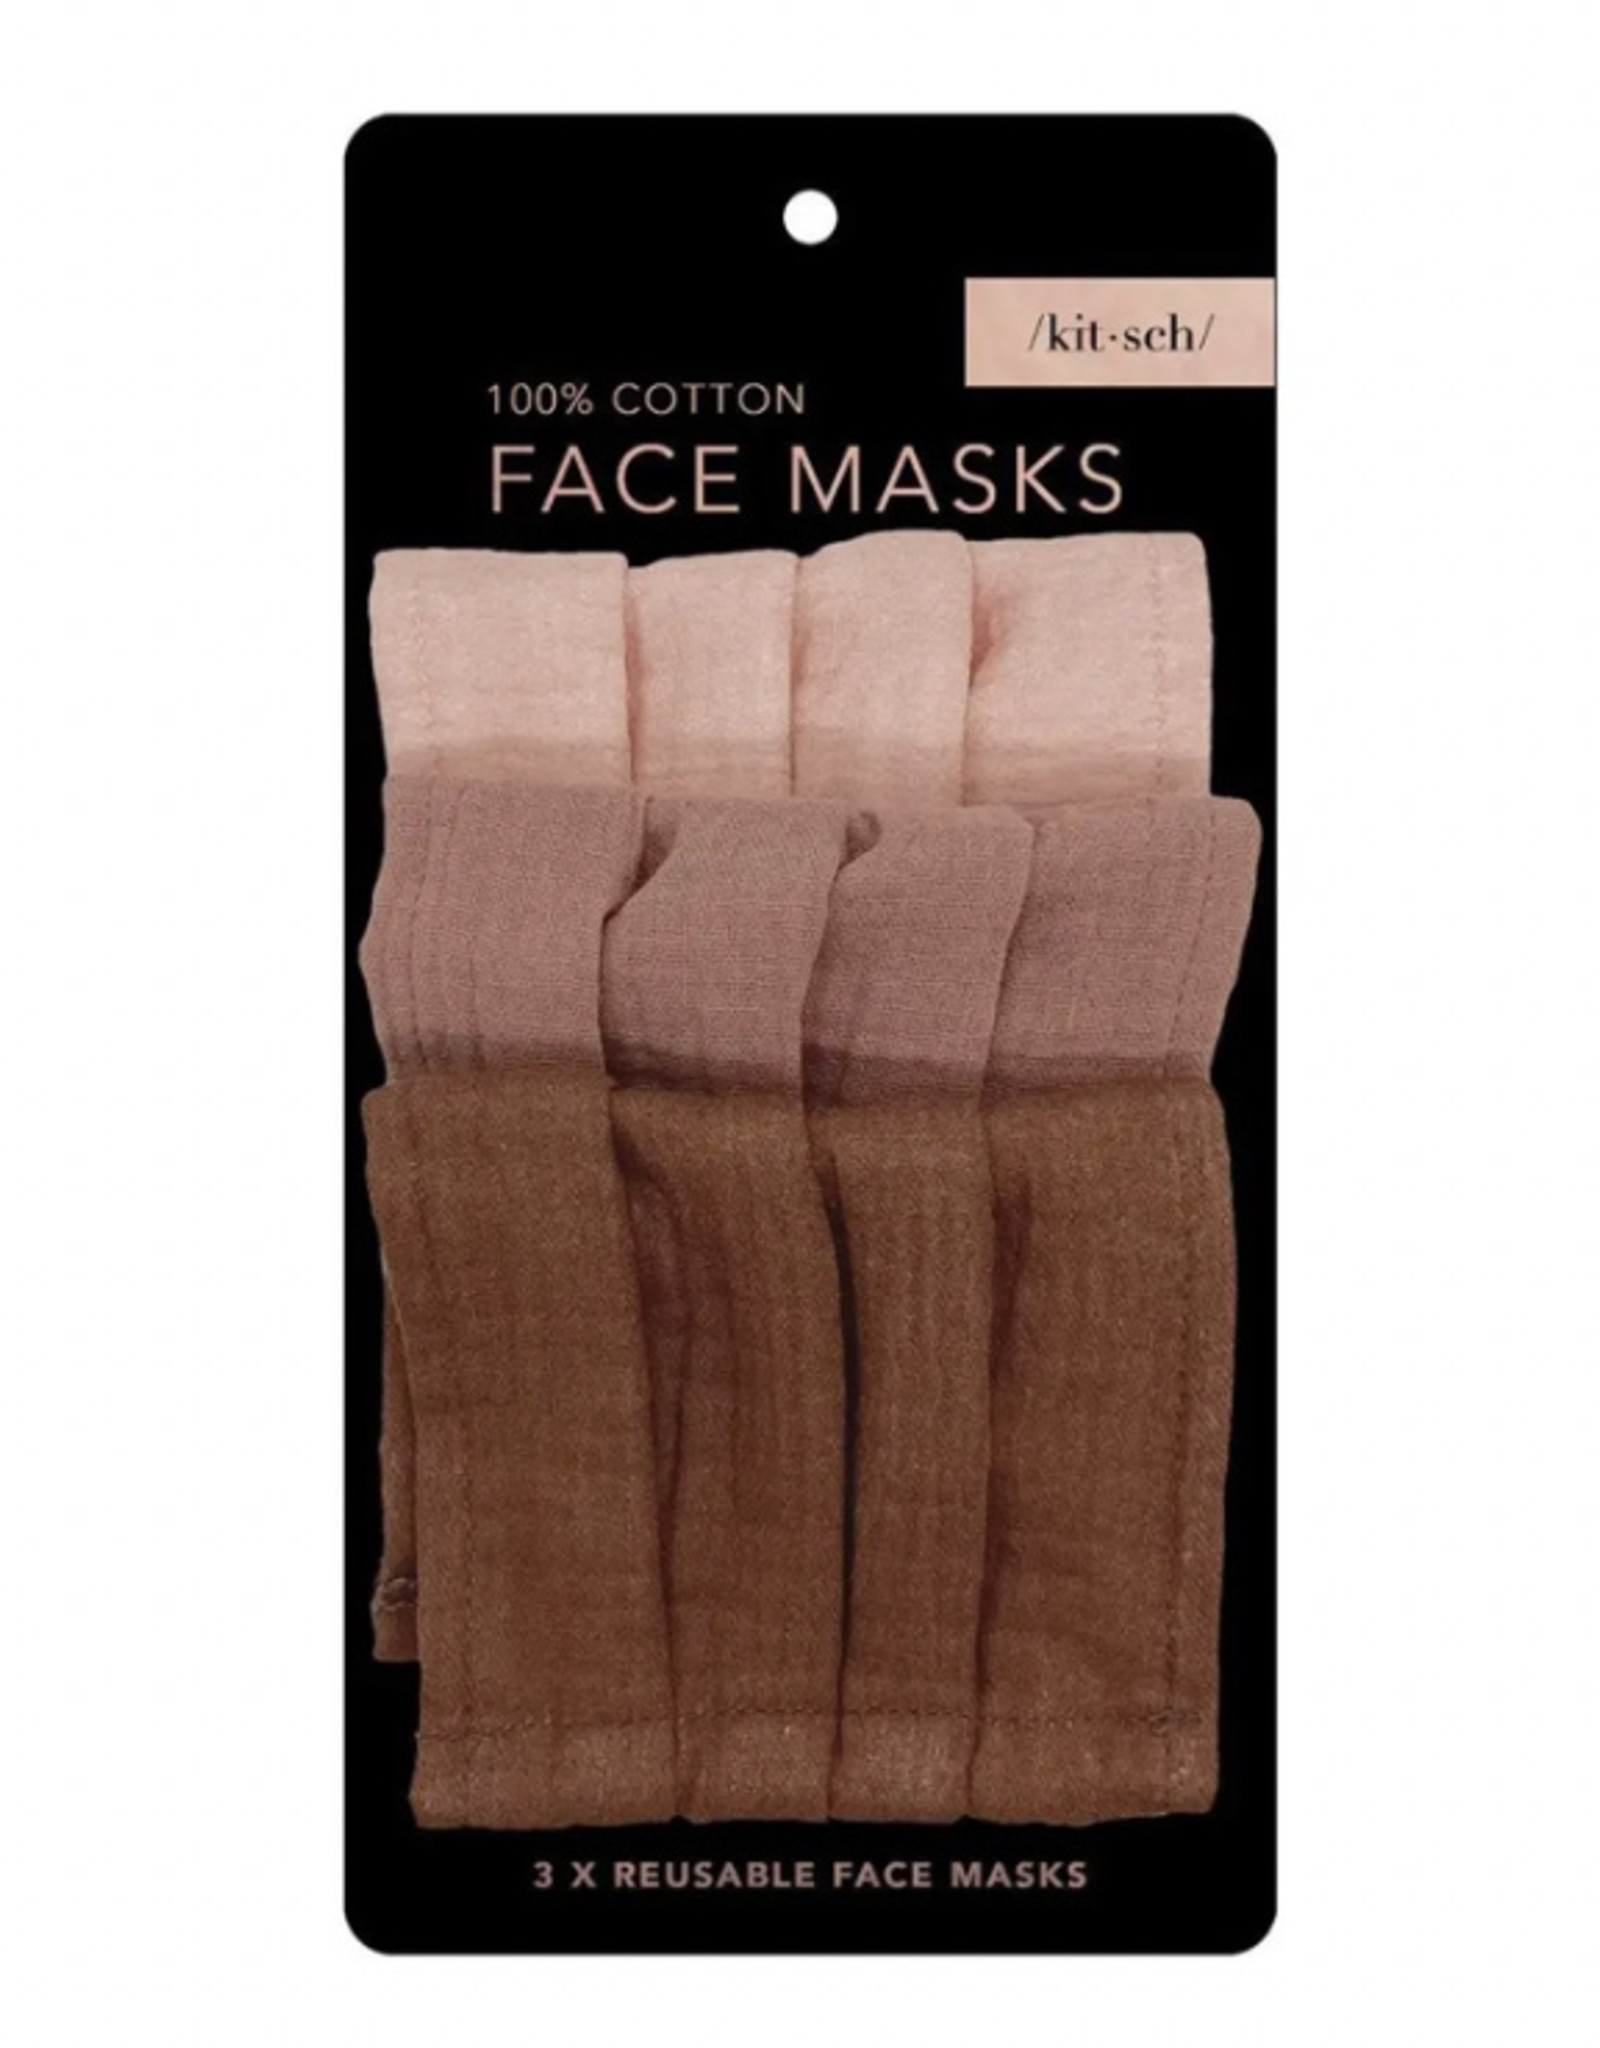 Kitsch Cotton Mask-3 piece set